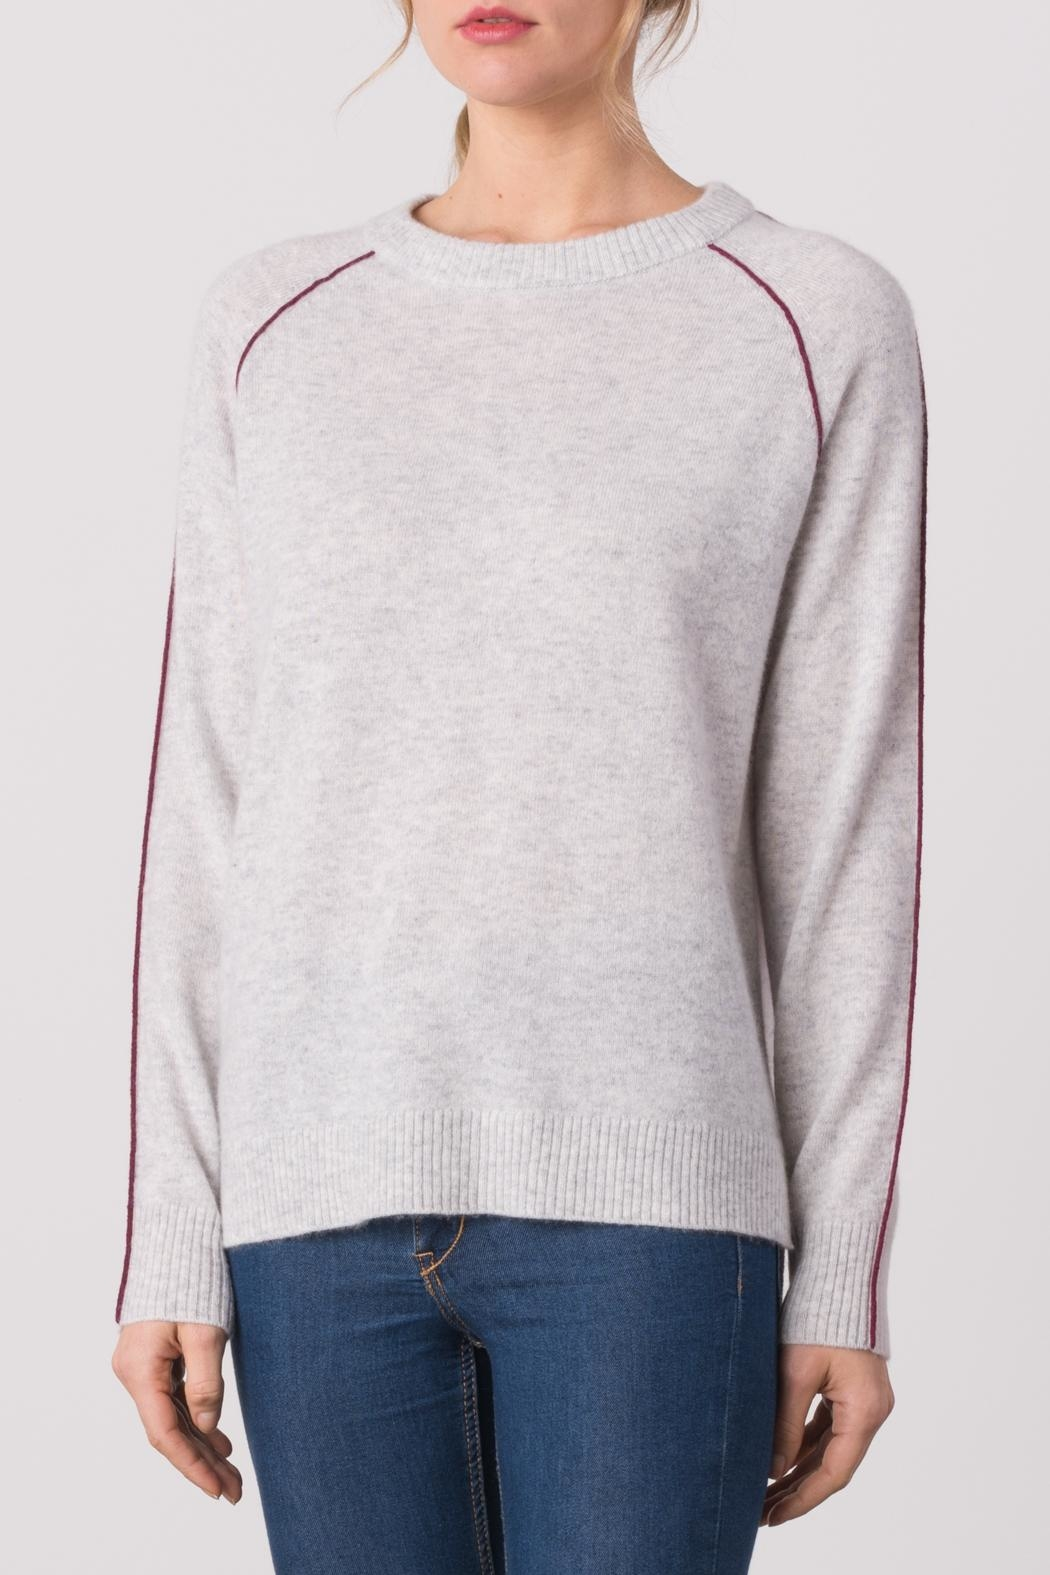 Margaret O'Leary Color Block Sweater - Back Cropped Image